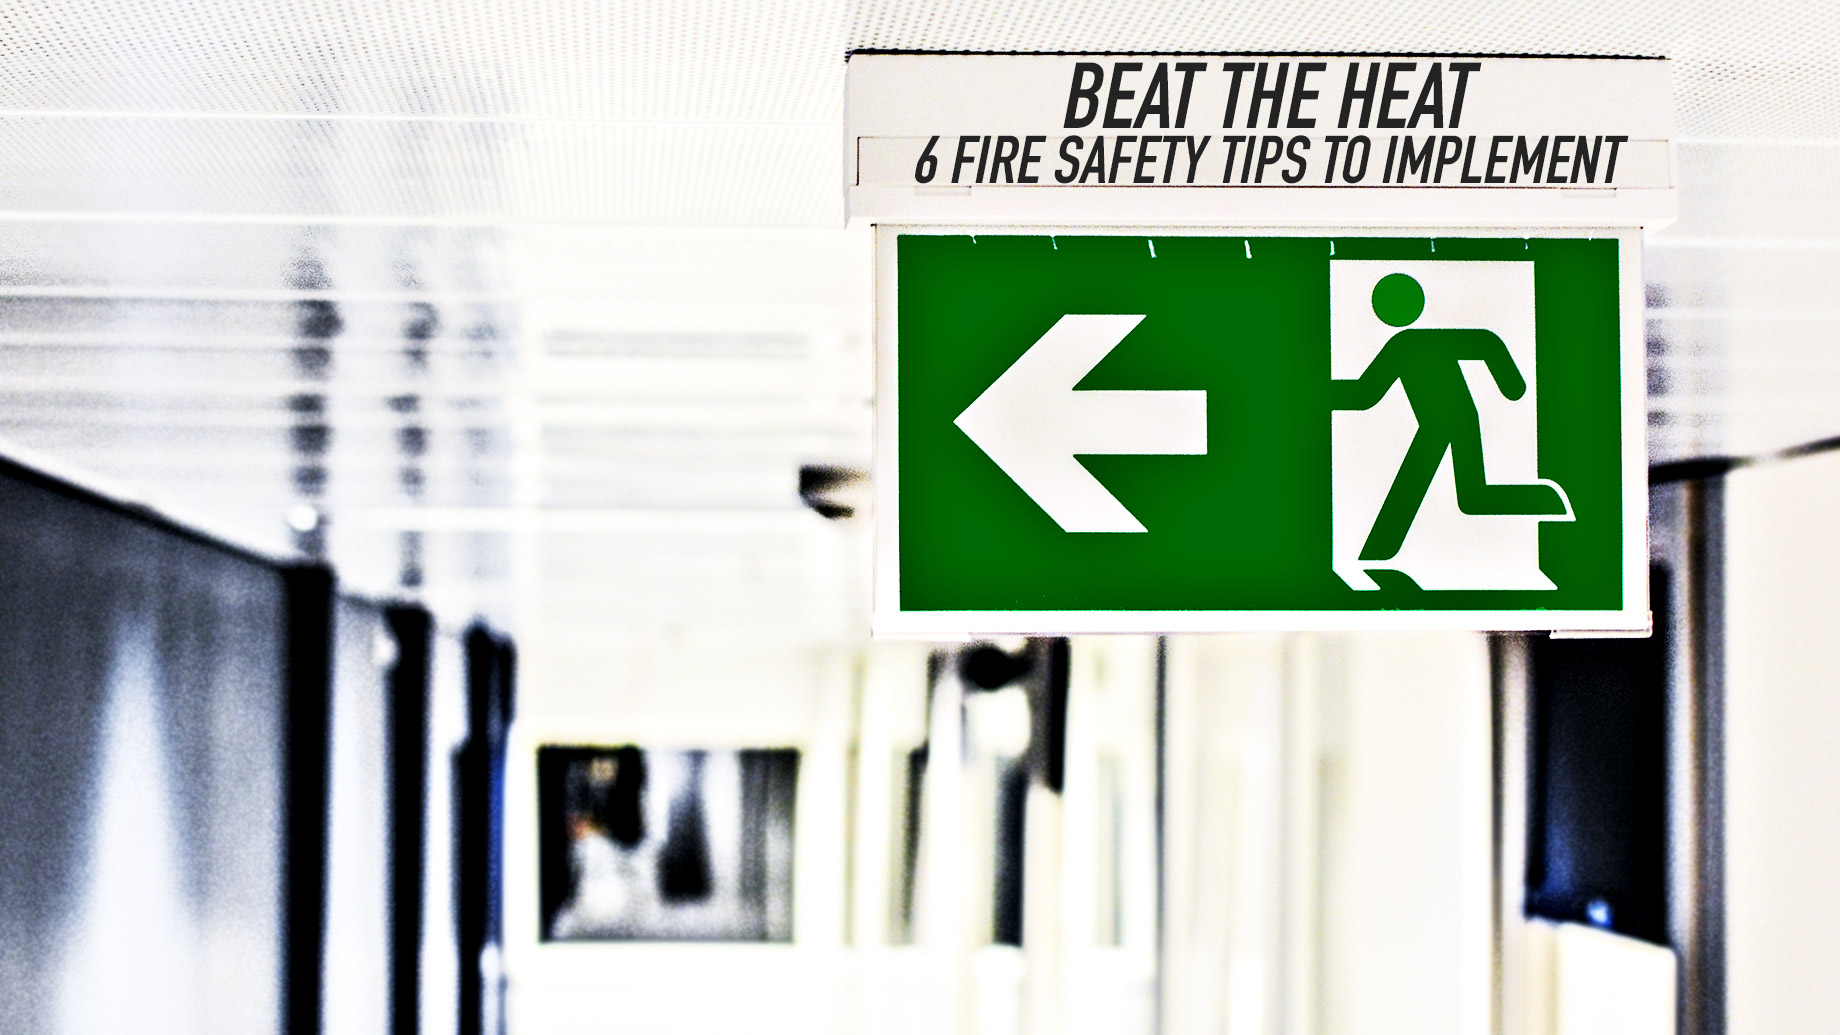 Beat the Heat - 6 Fire Safety Tips to Implement in the Workplace